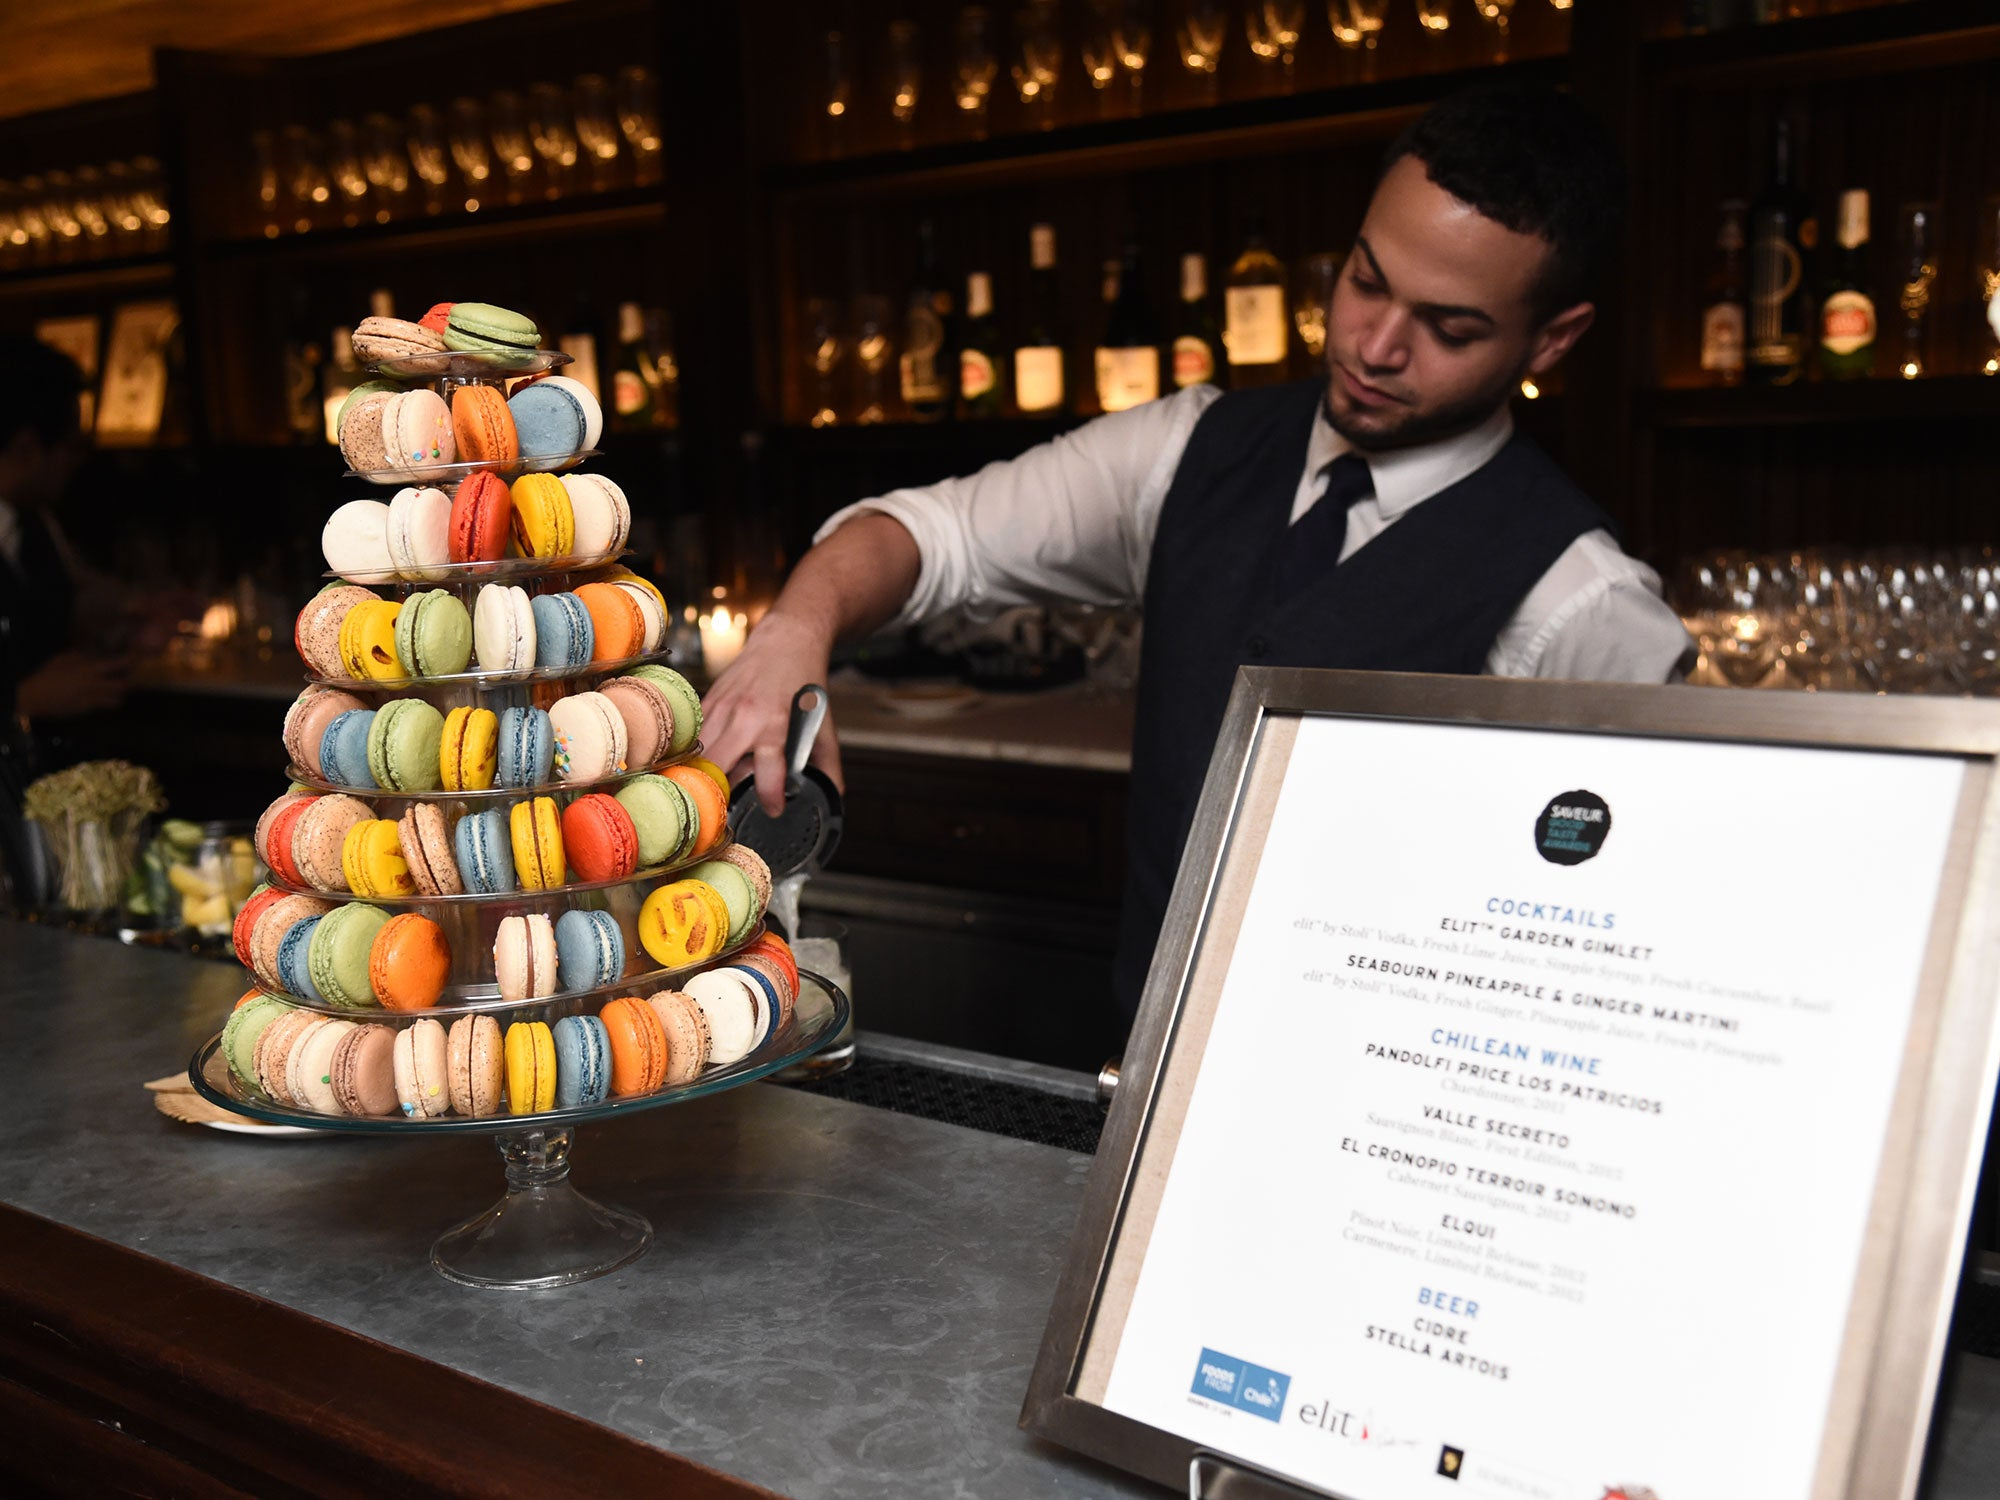 Caviar and a Macaron Tower: Scenes from Our Good Taste Awards Party